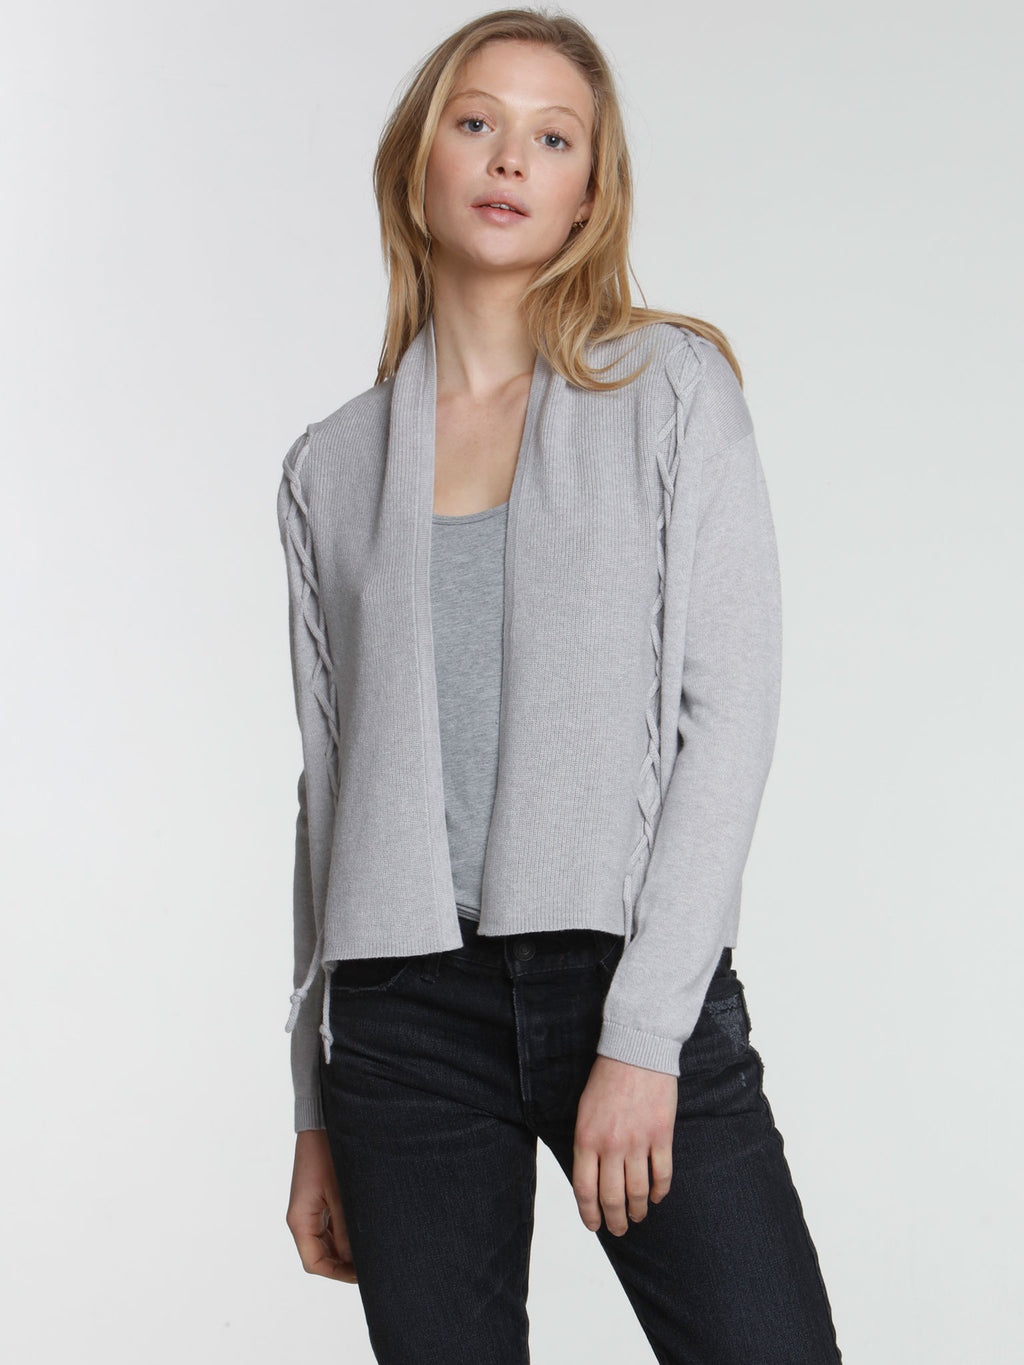 Twisted Tie Cardigan - Fog